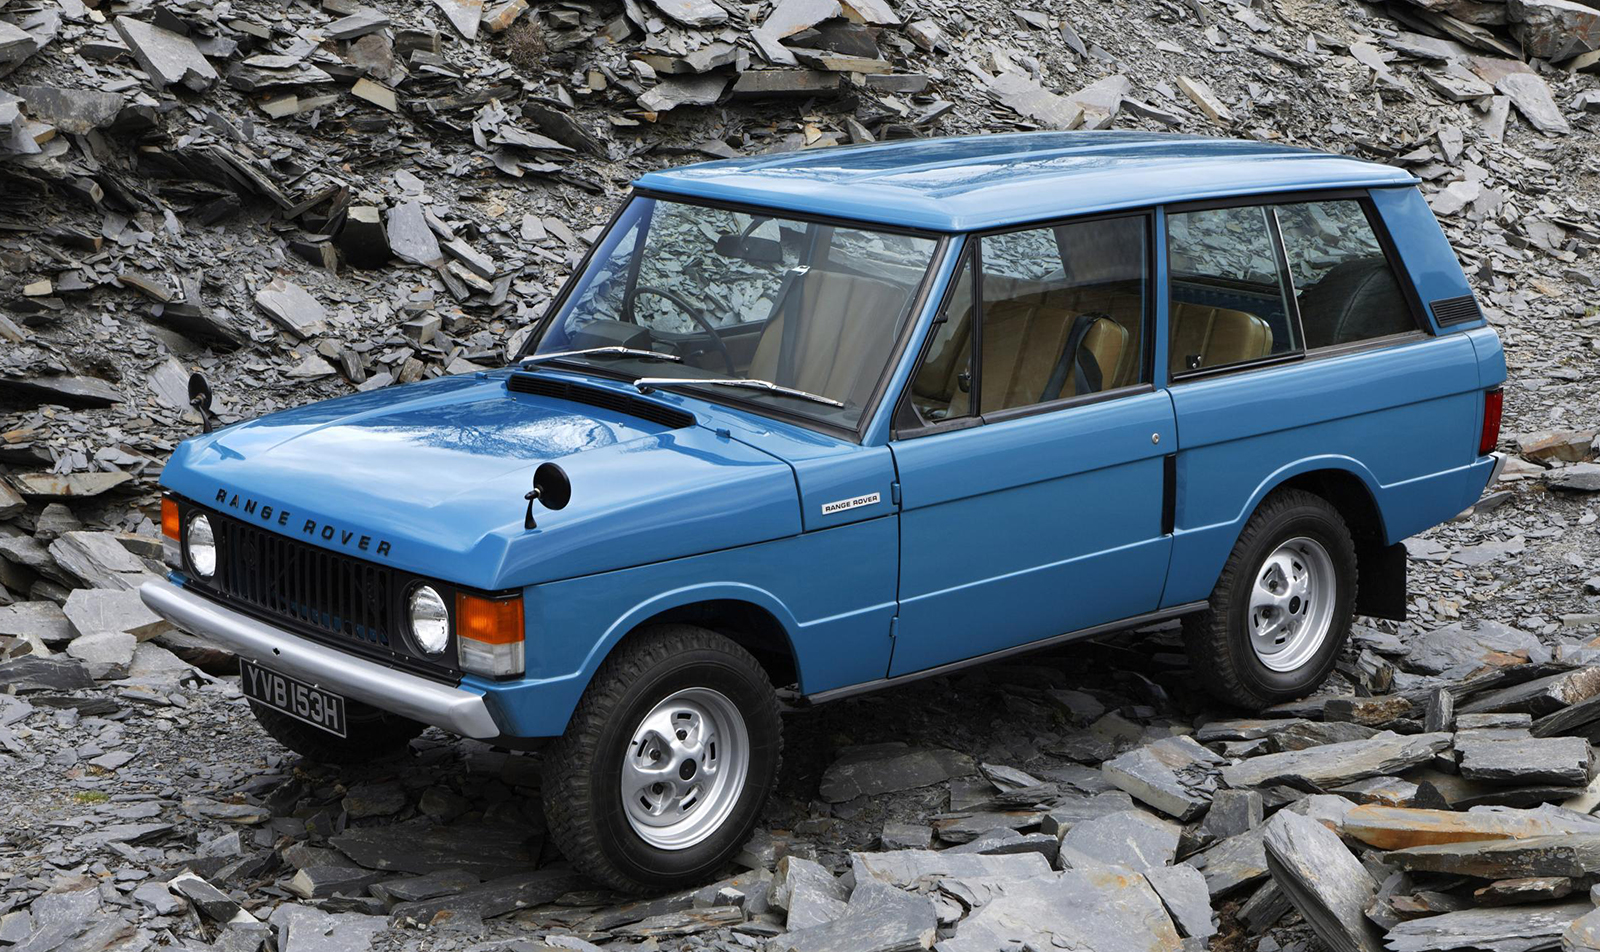 2018 Land Rover Models >> Land Rover Heritage division established – offers original parts for out of production models ...